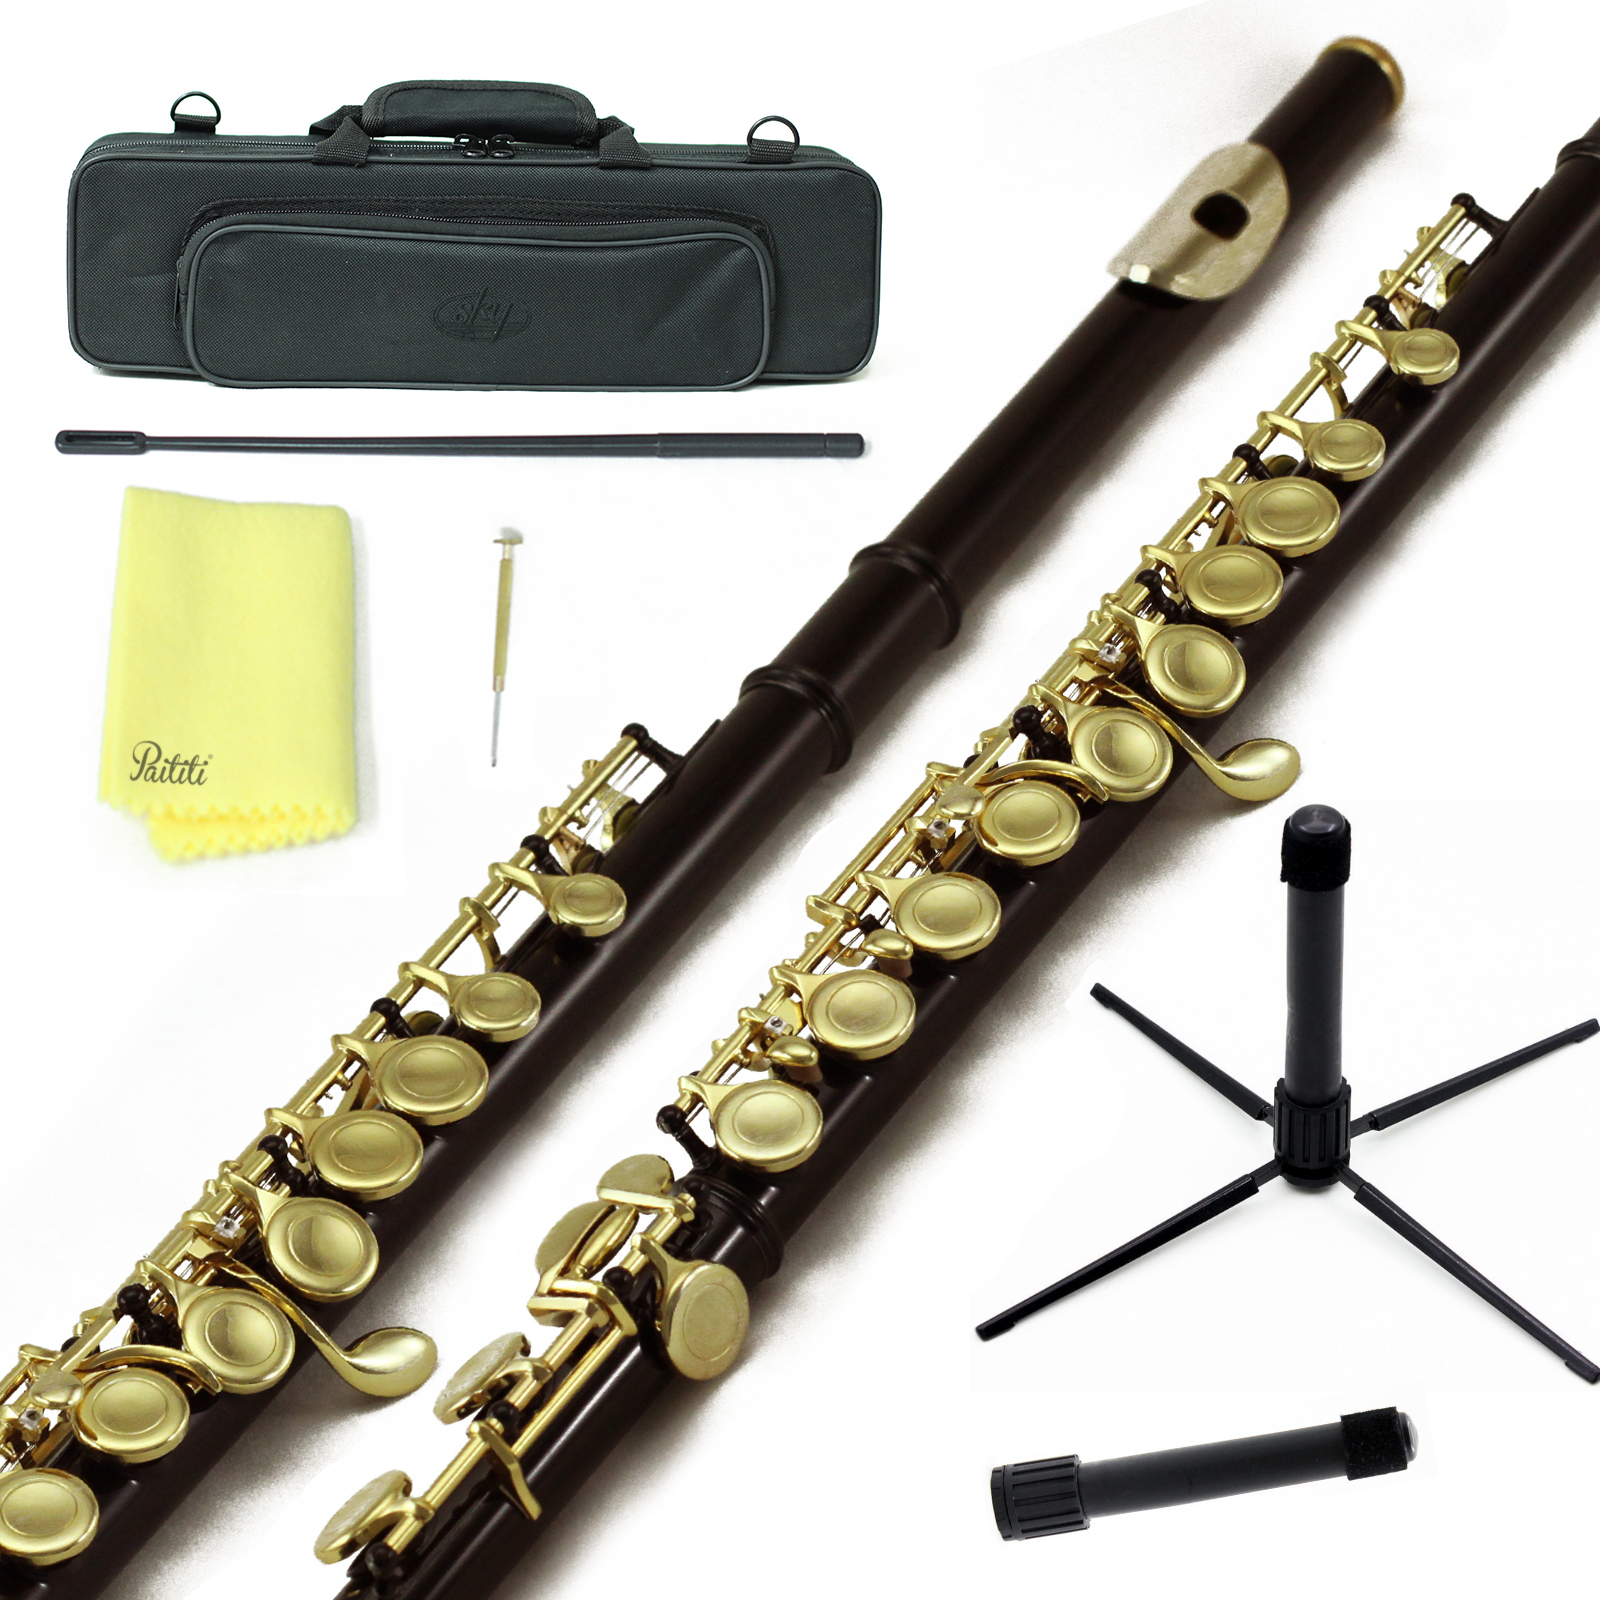 Sky Closed Hole C Flute with Lightweight Case, Cleaning Rod, Cloth, Joint Grease and Screw Driver - Black Gold